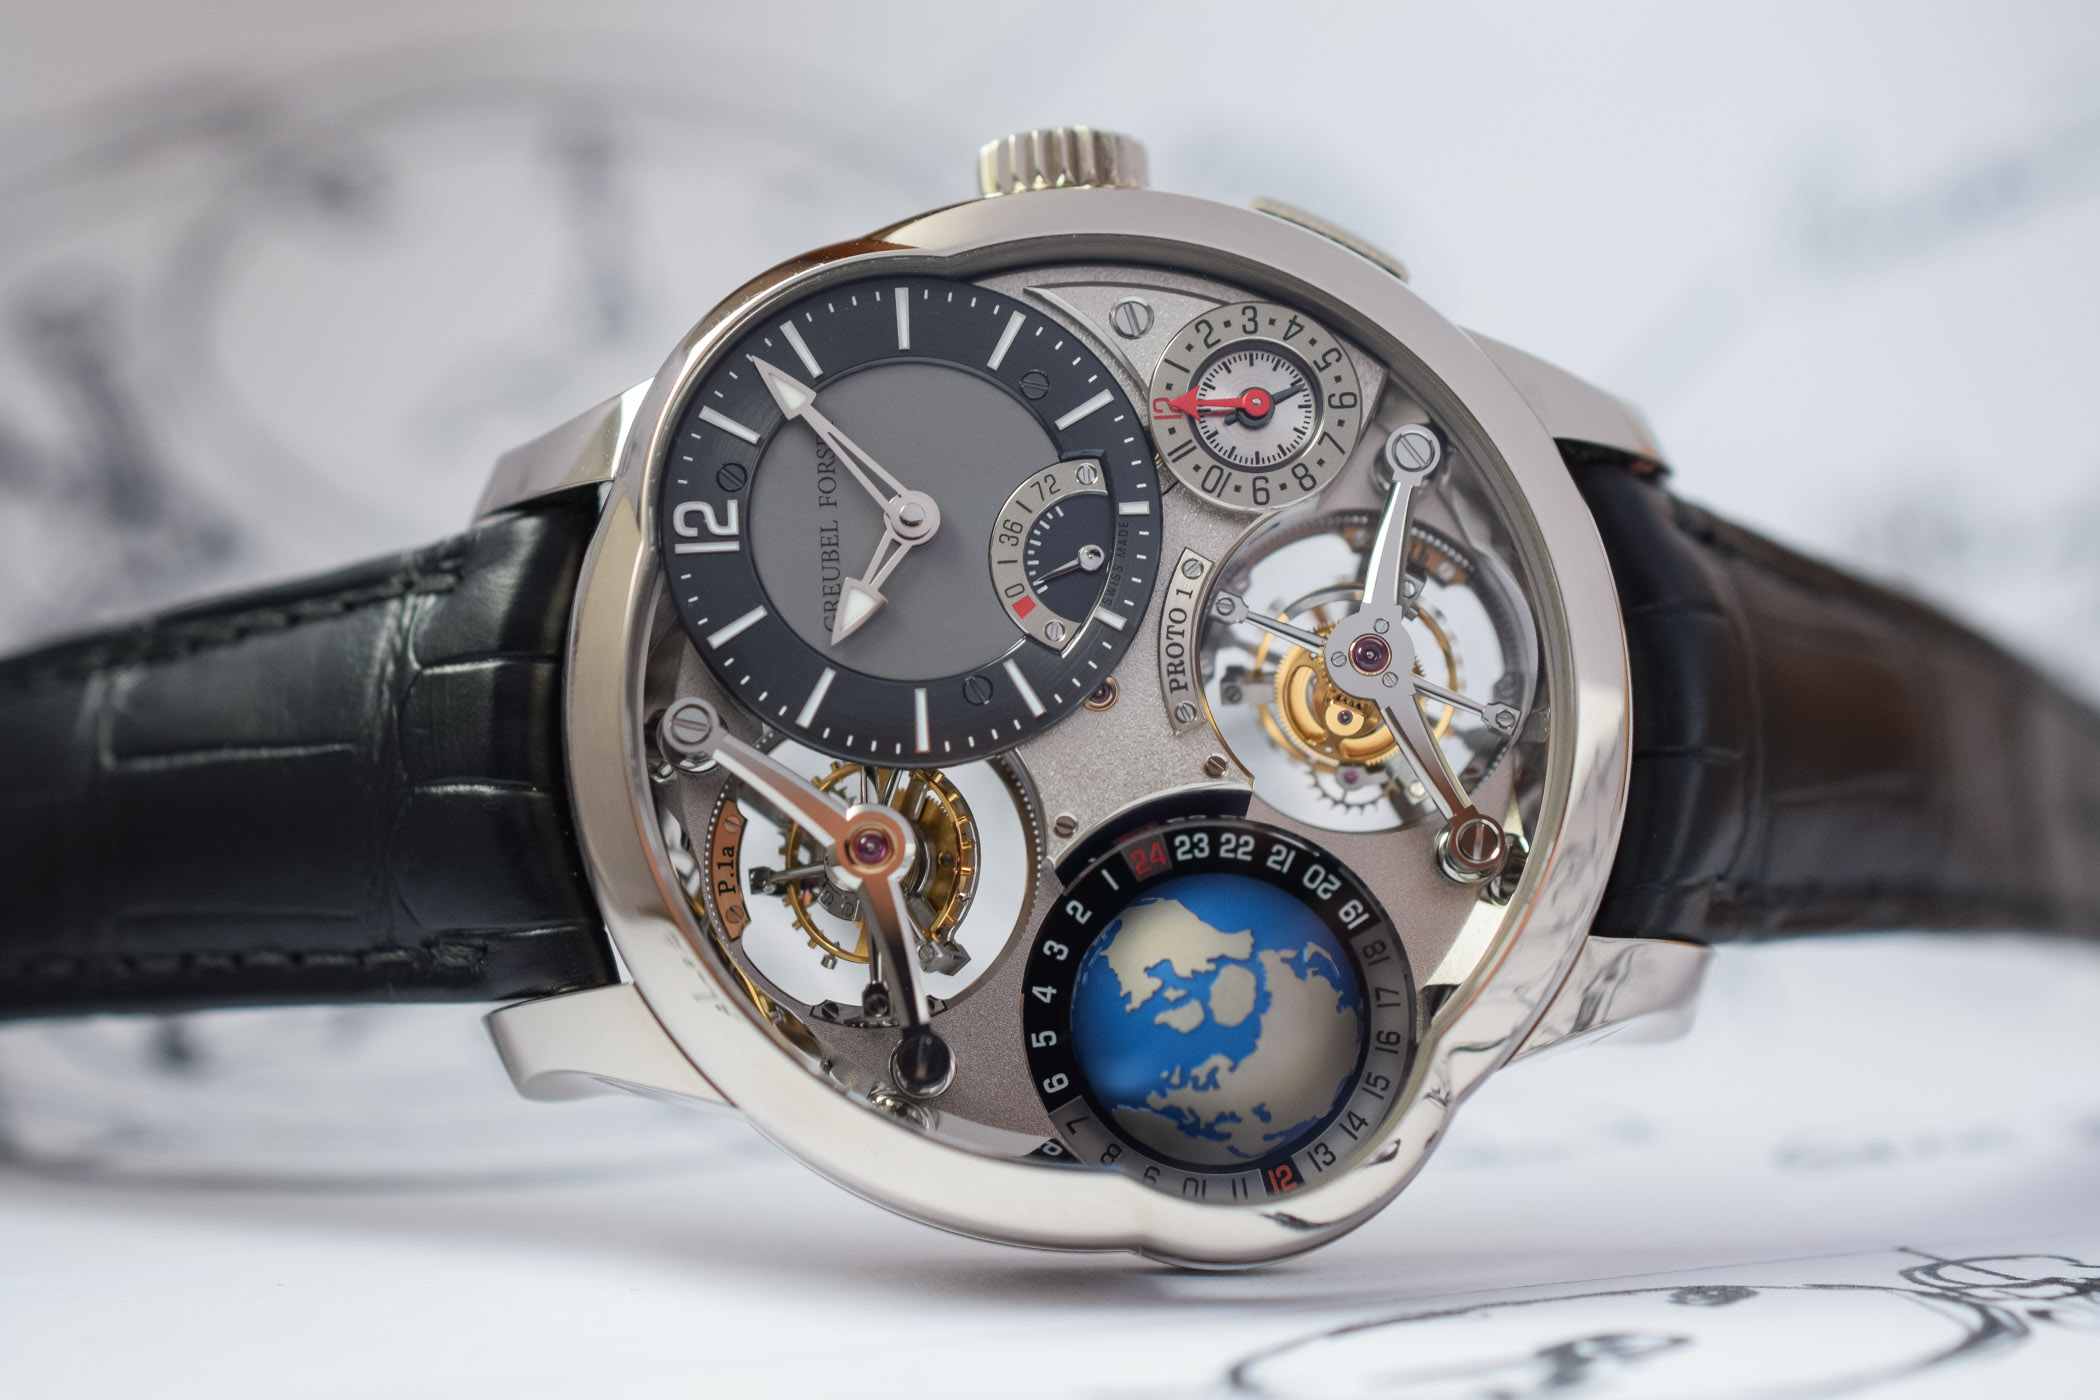 Greubel Forsey GMT Quadruple Tourbillon - Baselworld 2019